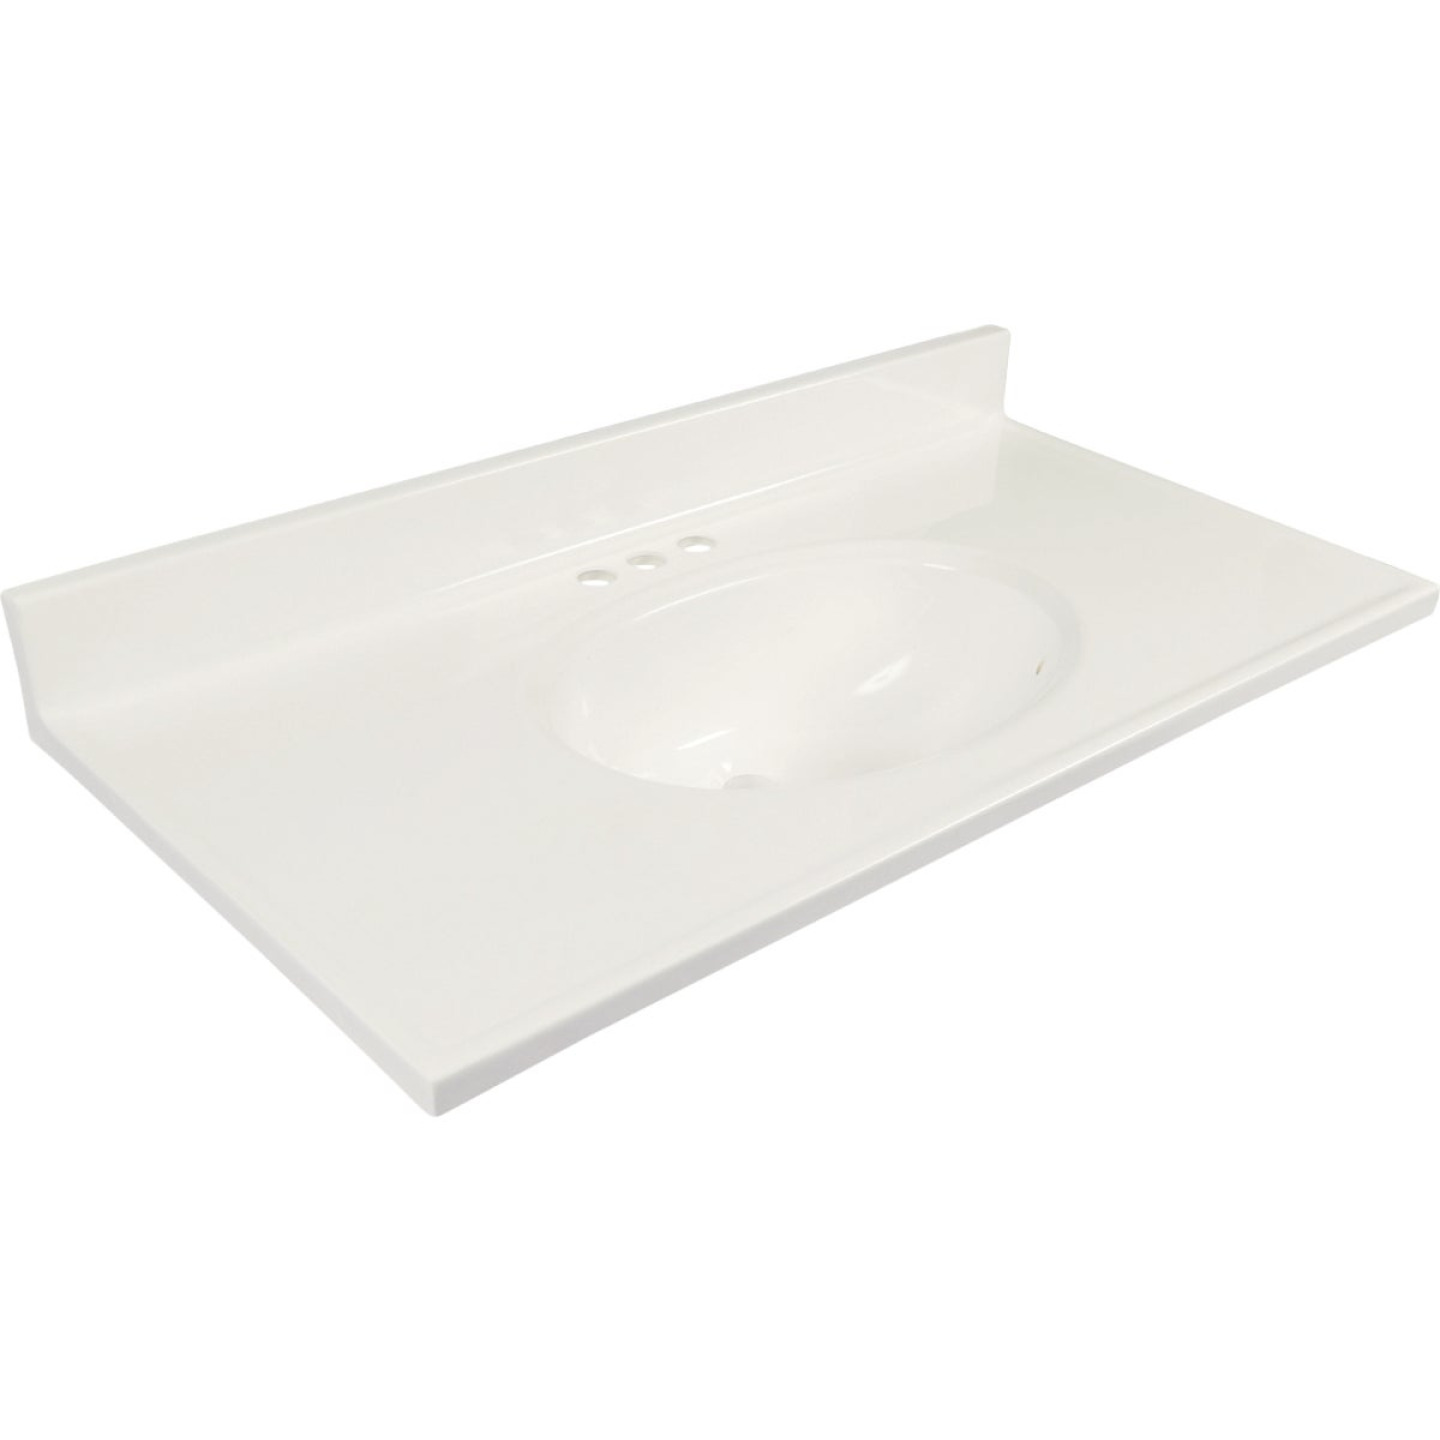 Modular Vanity Tops 37 In. W x 19 In. D Solid White Cultured Marble Non-Drip Edge Vanity Top with Oval Bowl Image 1